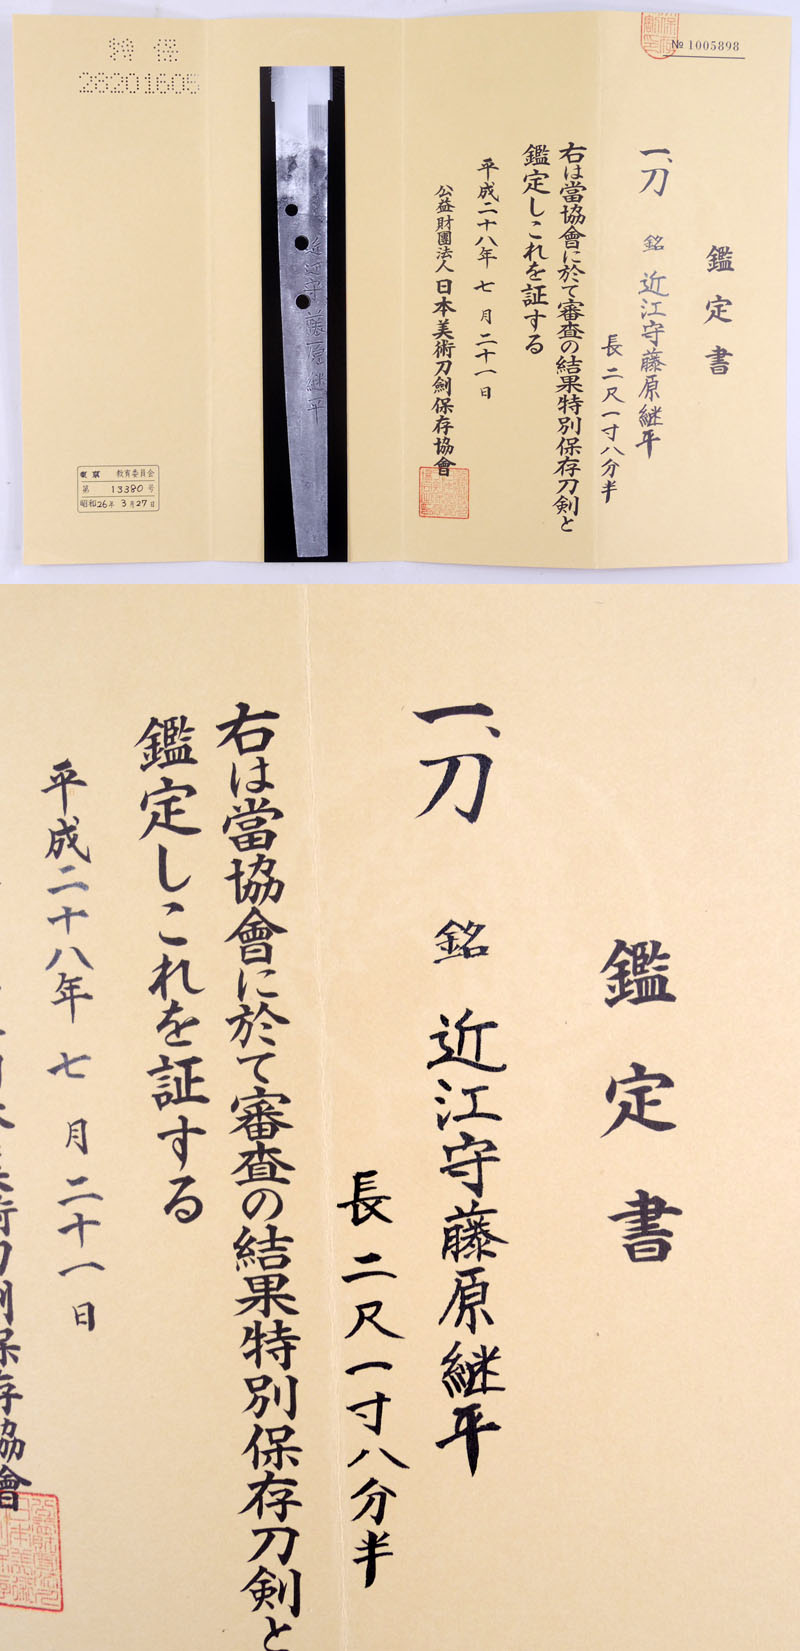 近江守藤原継平 Picture of Certificate